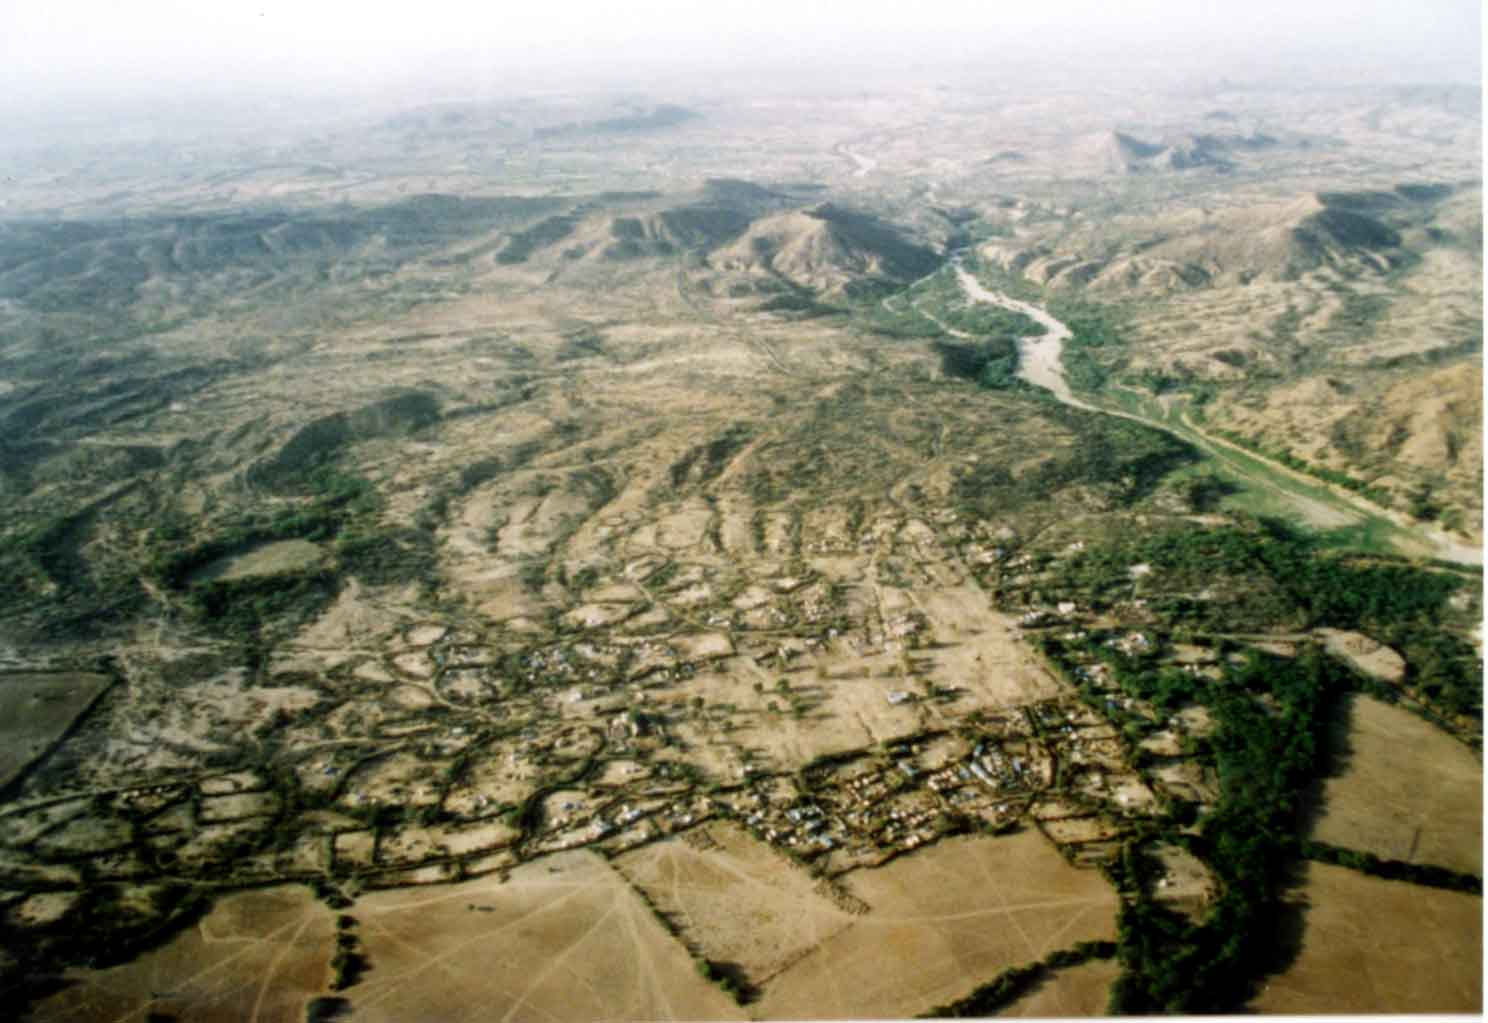 bhuj earthquake An earthquake measuring 77 on the richter scale struck bhuj in the kutch district of gujarat at 8:46 am on on 26 january 2001 it levelled several towns and villages within a matter of seconds the impact of the earthquake was also felt at the economic capital of gujarat, ahmedabad, where tremors brought.